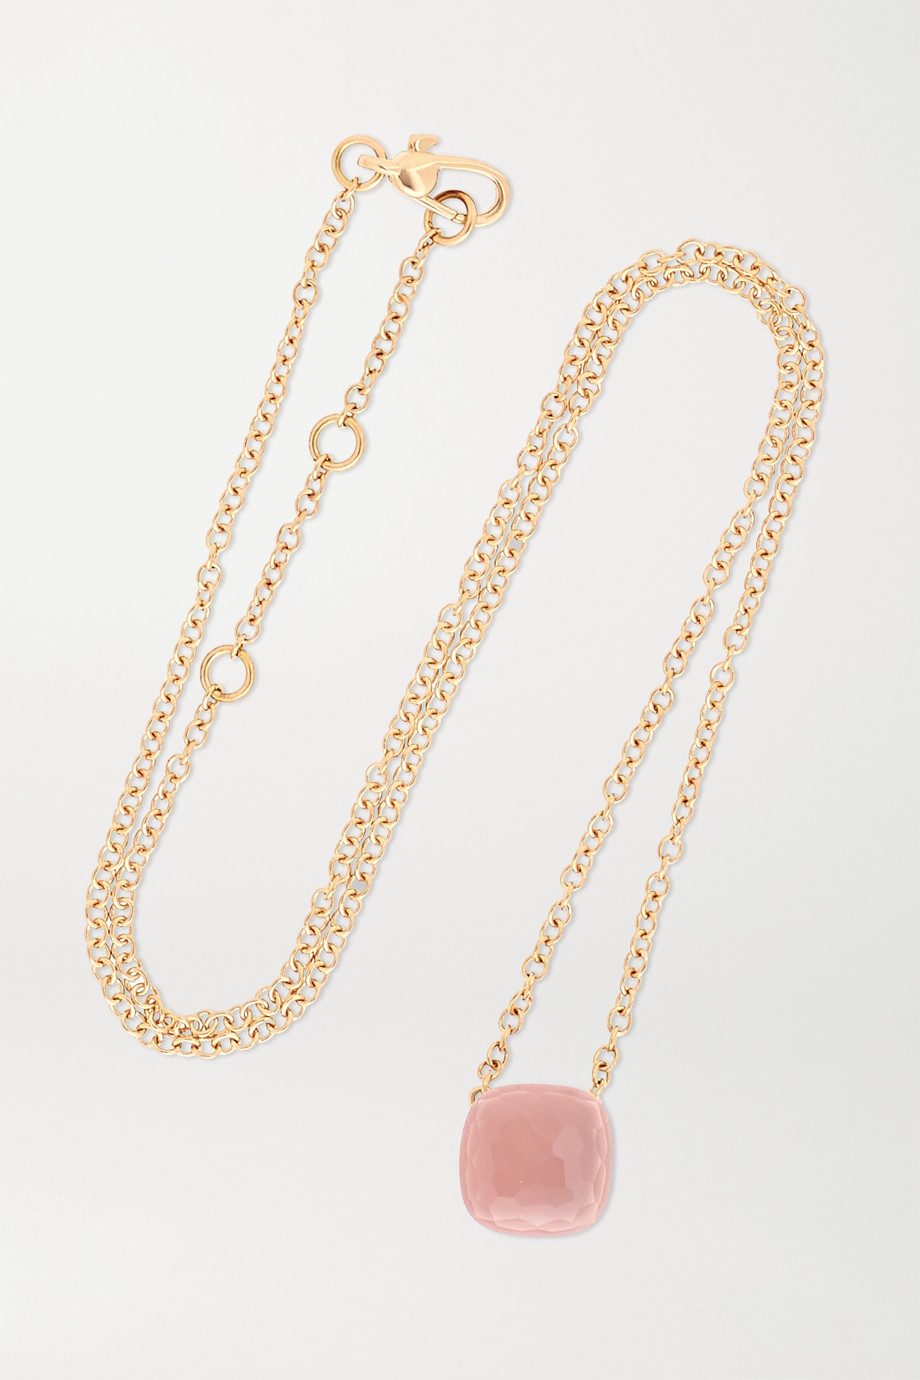 Pomellato Nudo 18-karat white and rose gold, rose quartz and chalcedony necklace